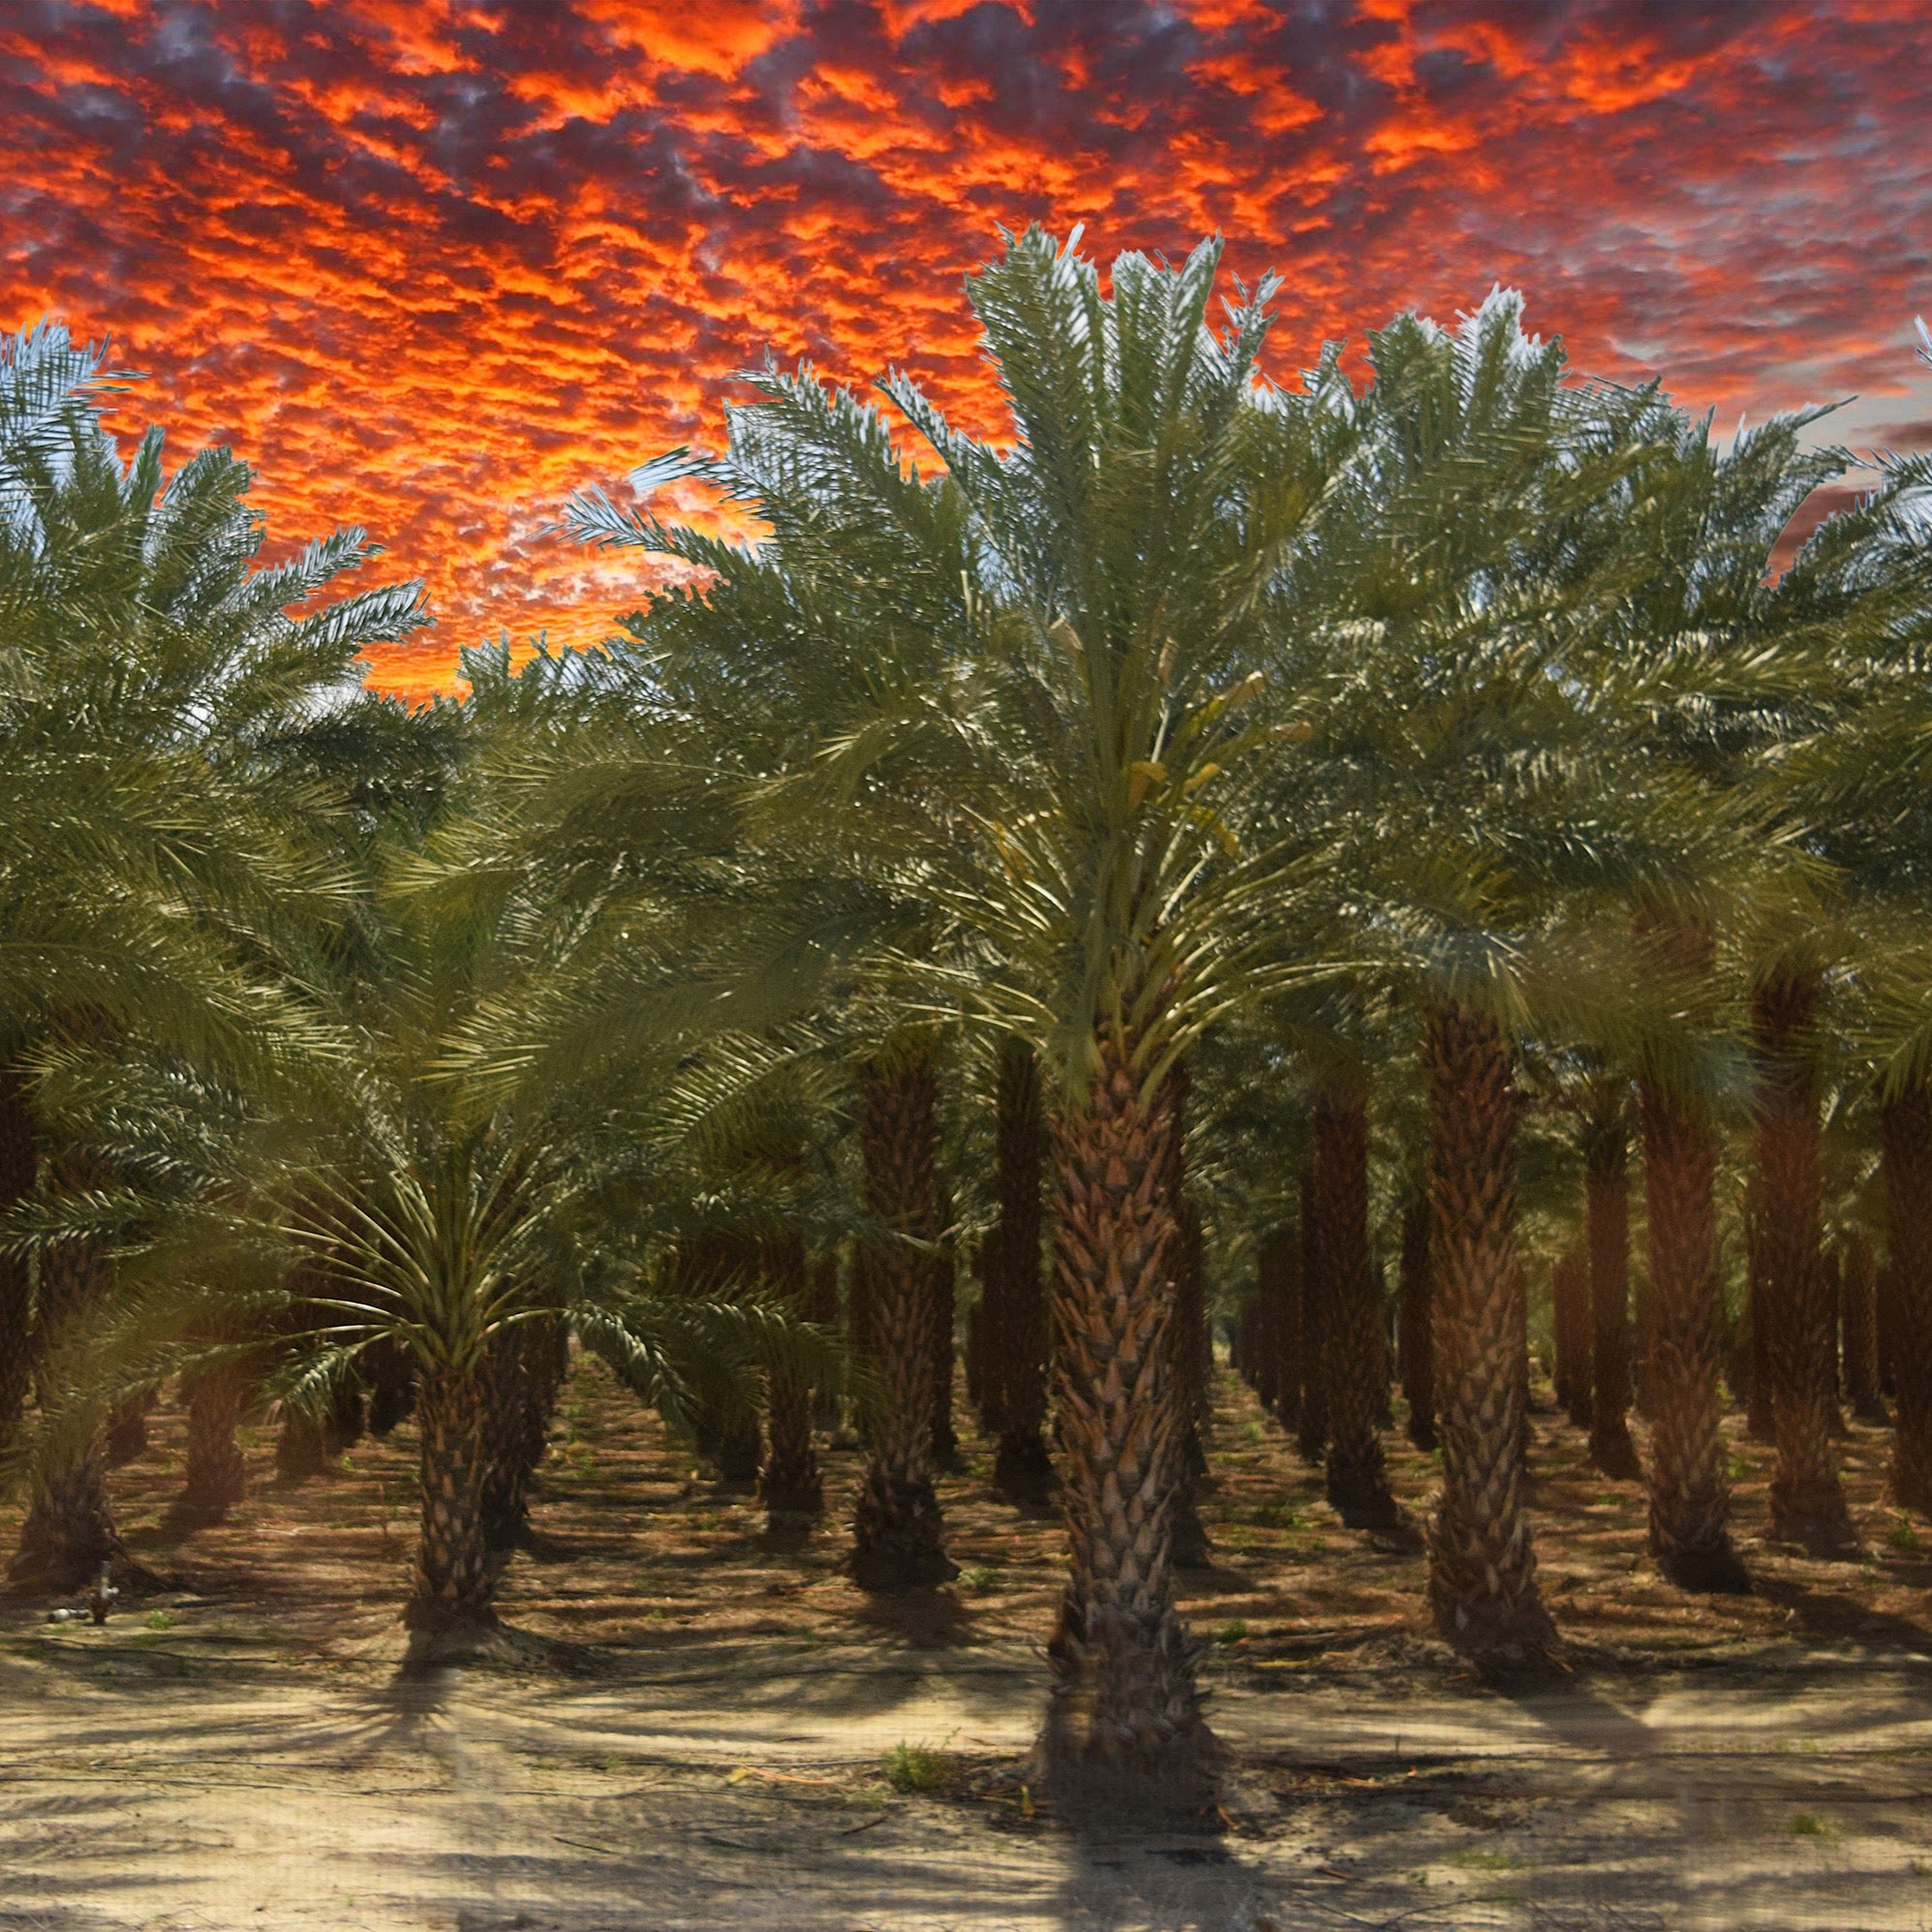 """Palm Tree Garden-Salton Sea"" by Sherry Schuessler 